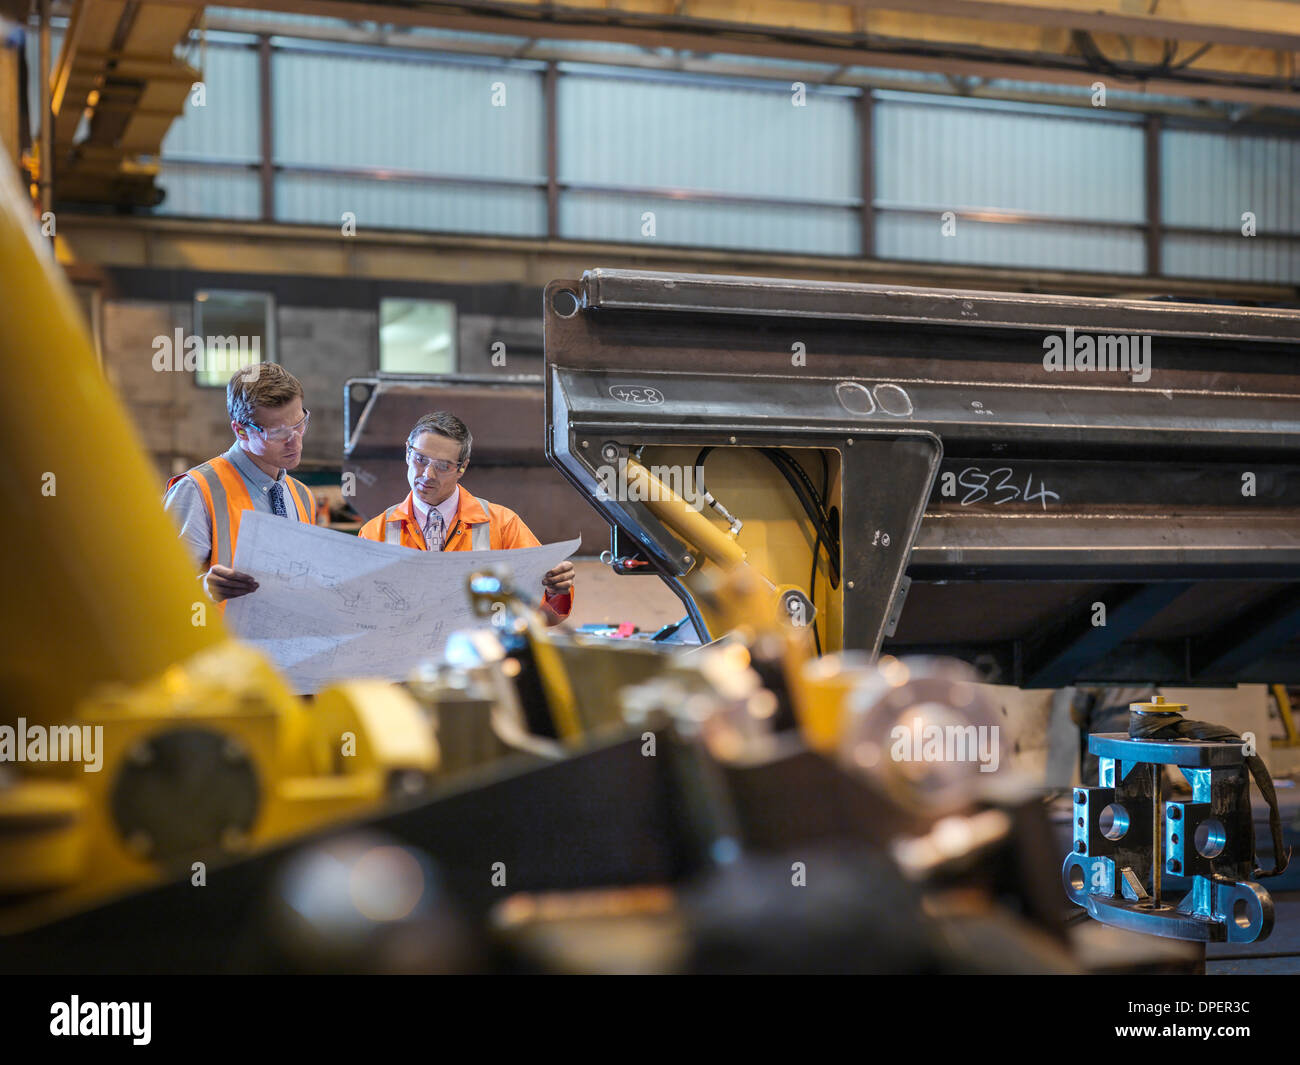 Engineers inspecting engineering drawings together in factory - Stock Image